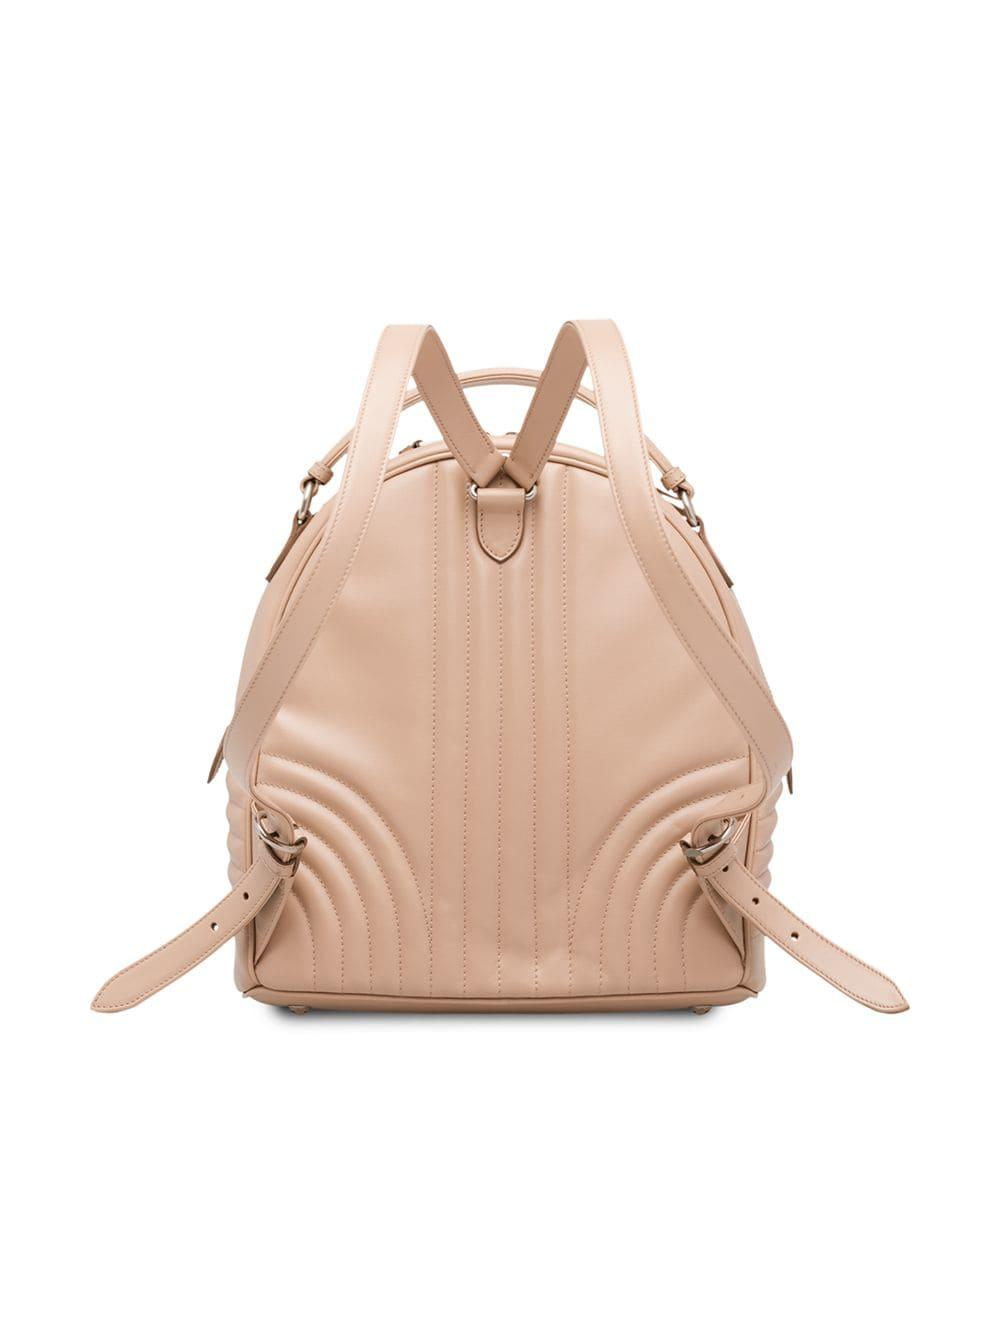 d2b8b89468c7 Lyst - Prada Diagramme Leather Backpack in Pink